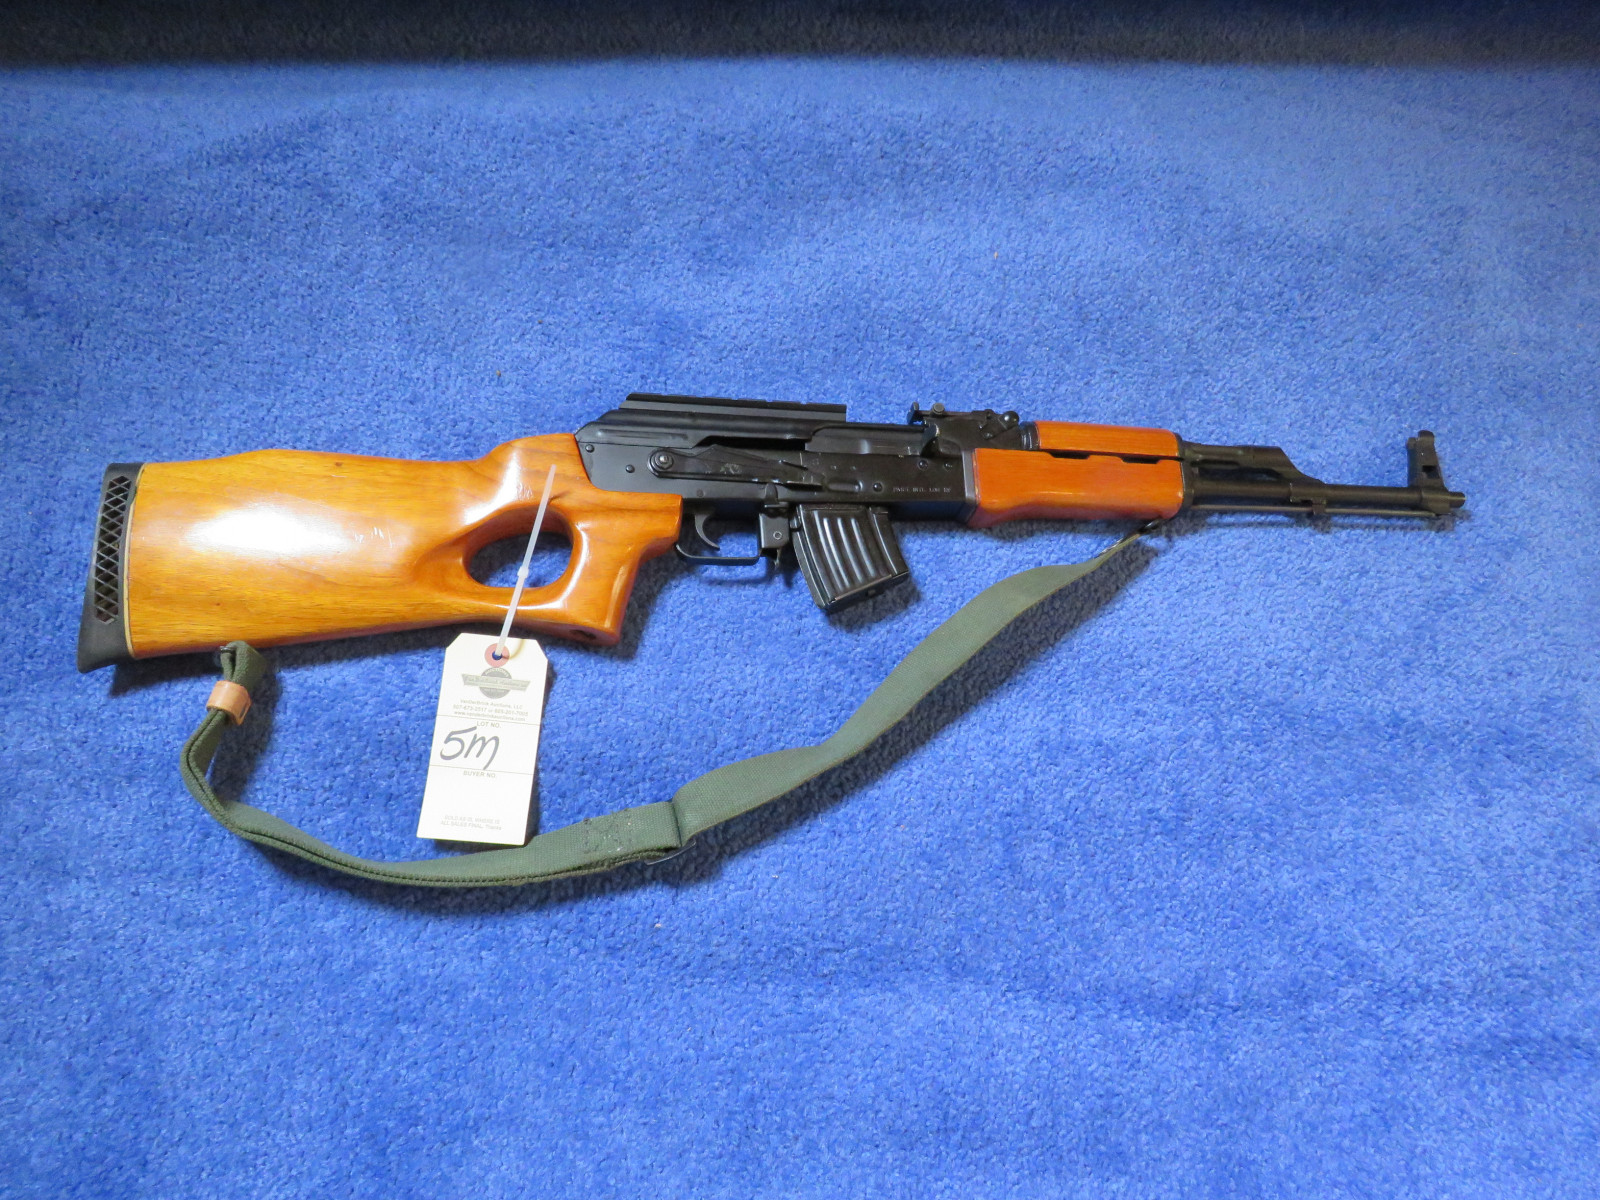 MAADI Corporation      AK-47 Semi-Automatic Rifle ES U3243 - Image 1